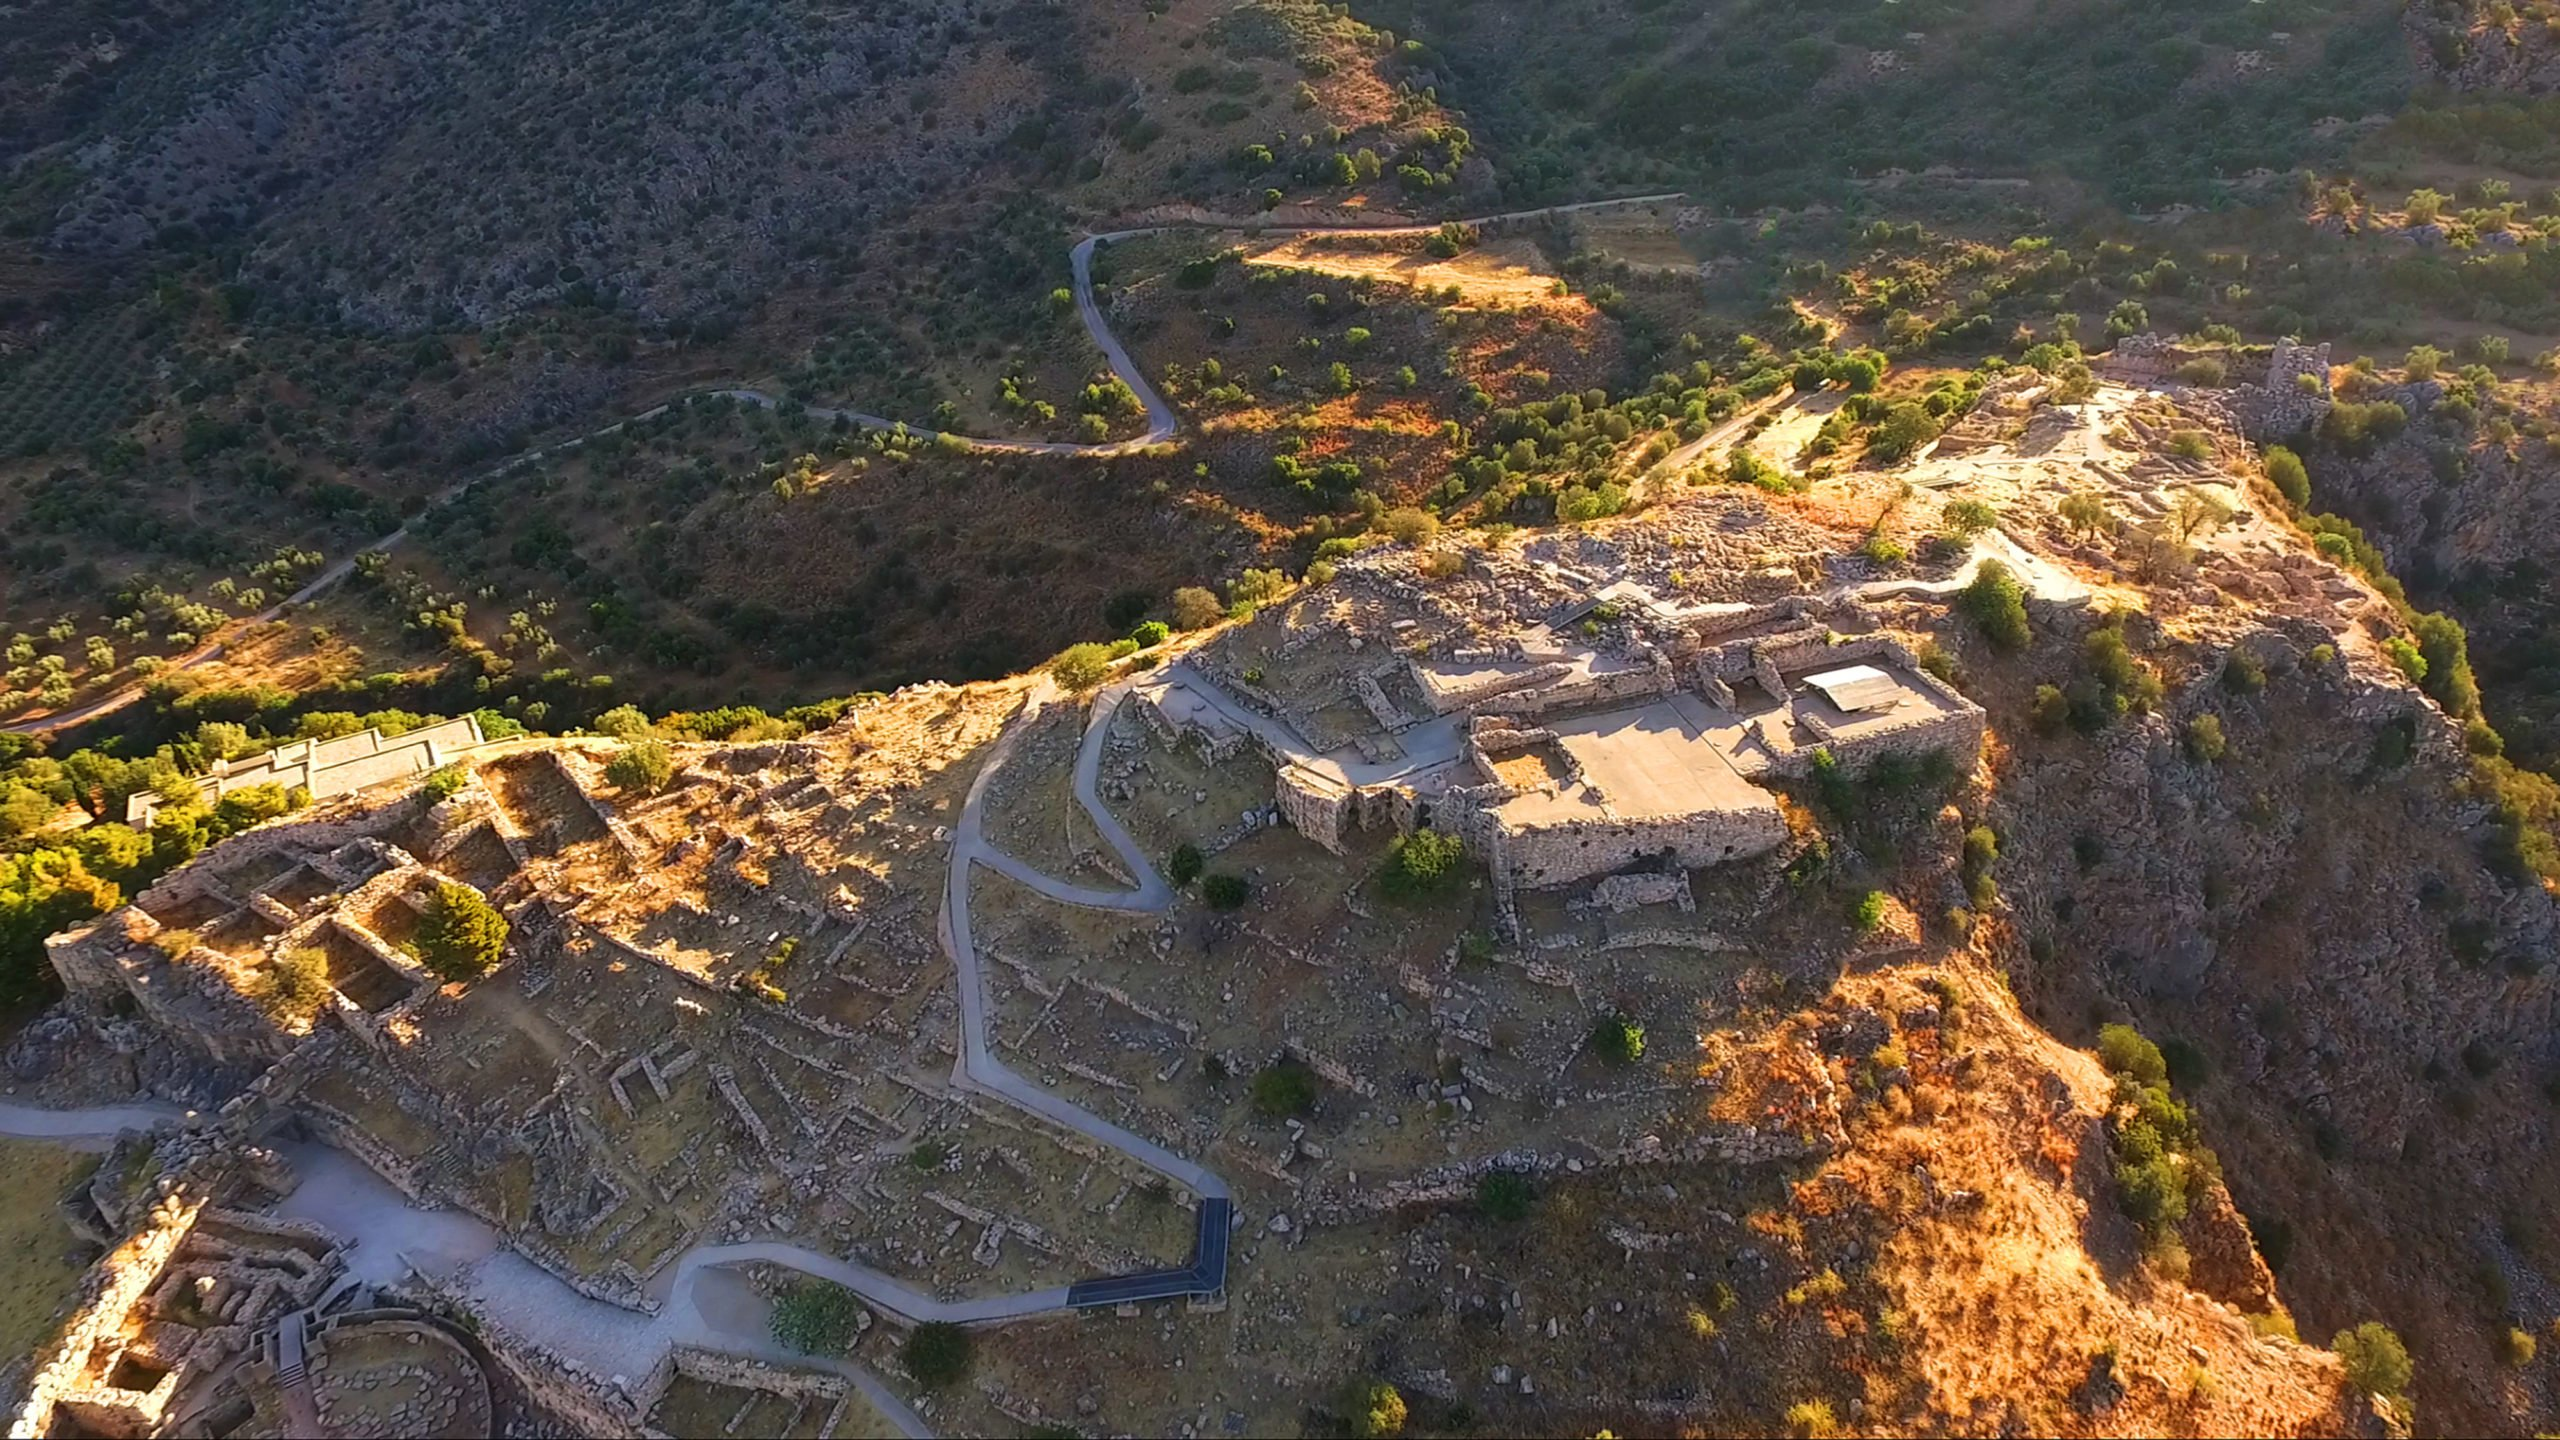 Discover Mycenae The Kingdom Of Agamemnon On The Epidaurus & Mycenae Tour From Athens